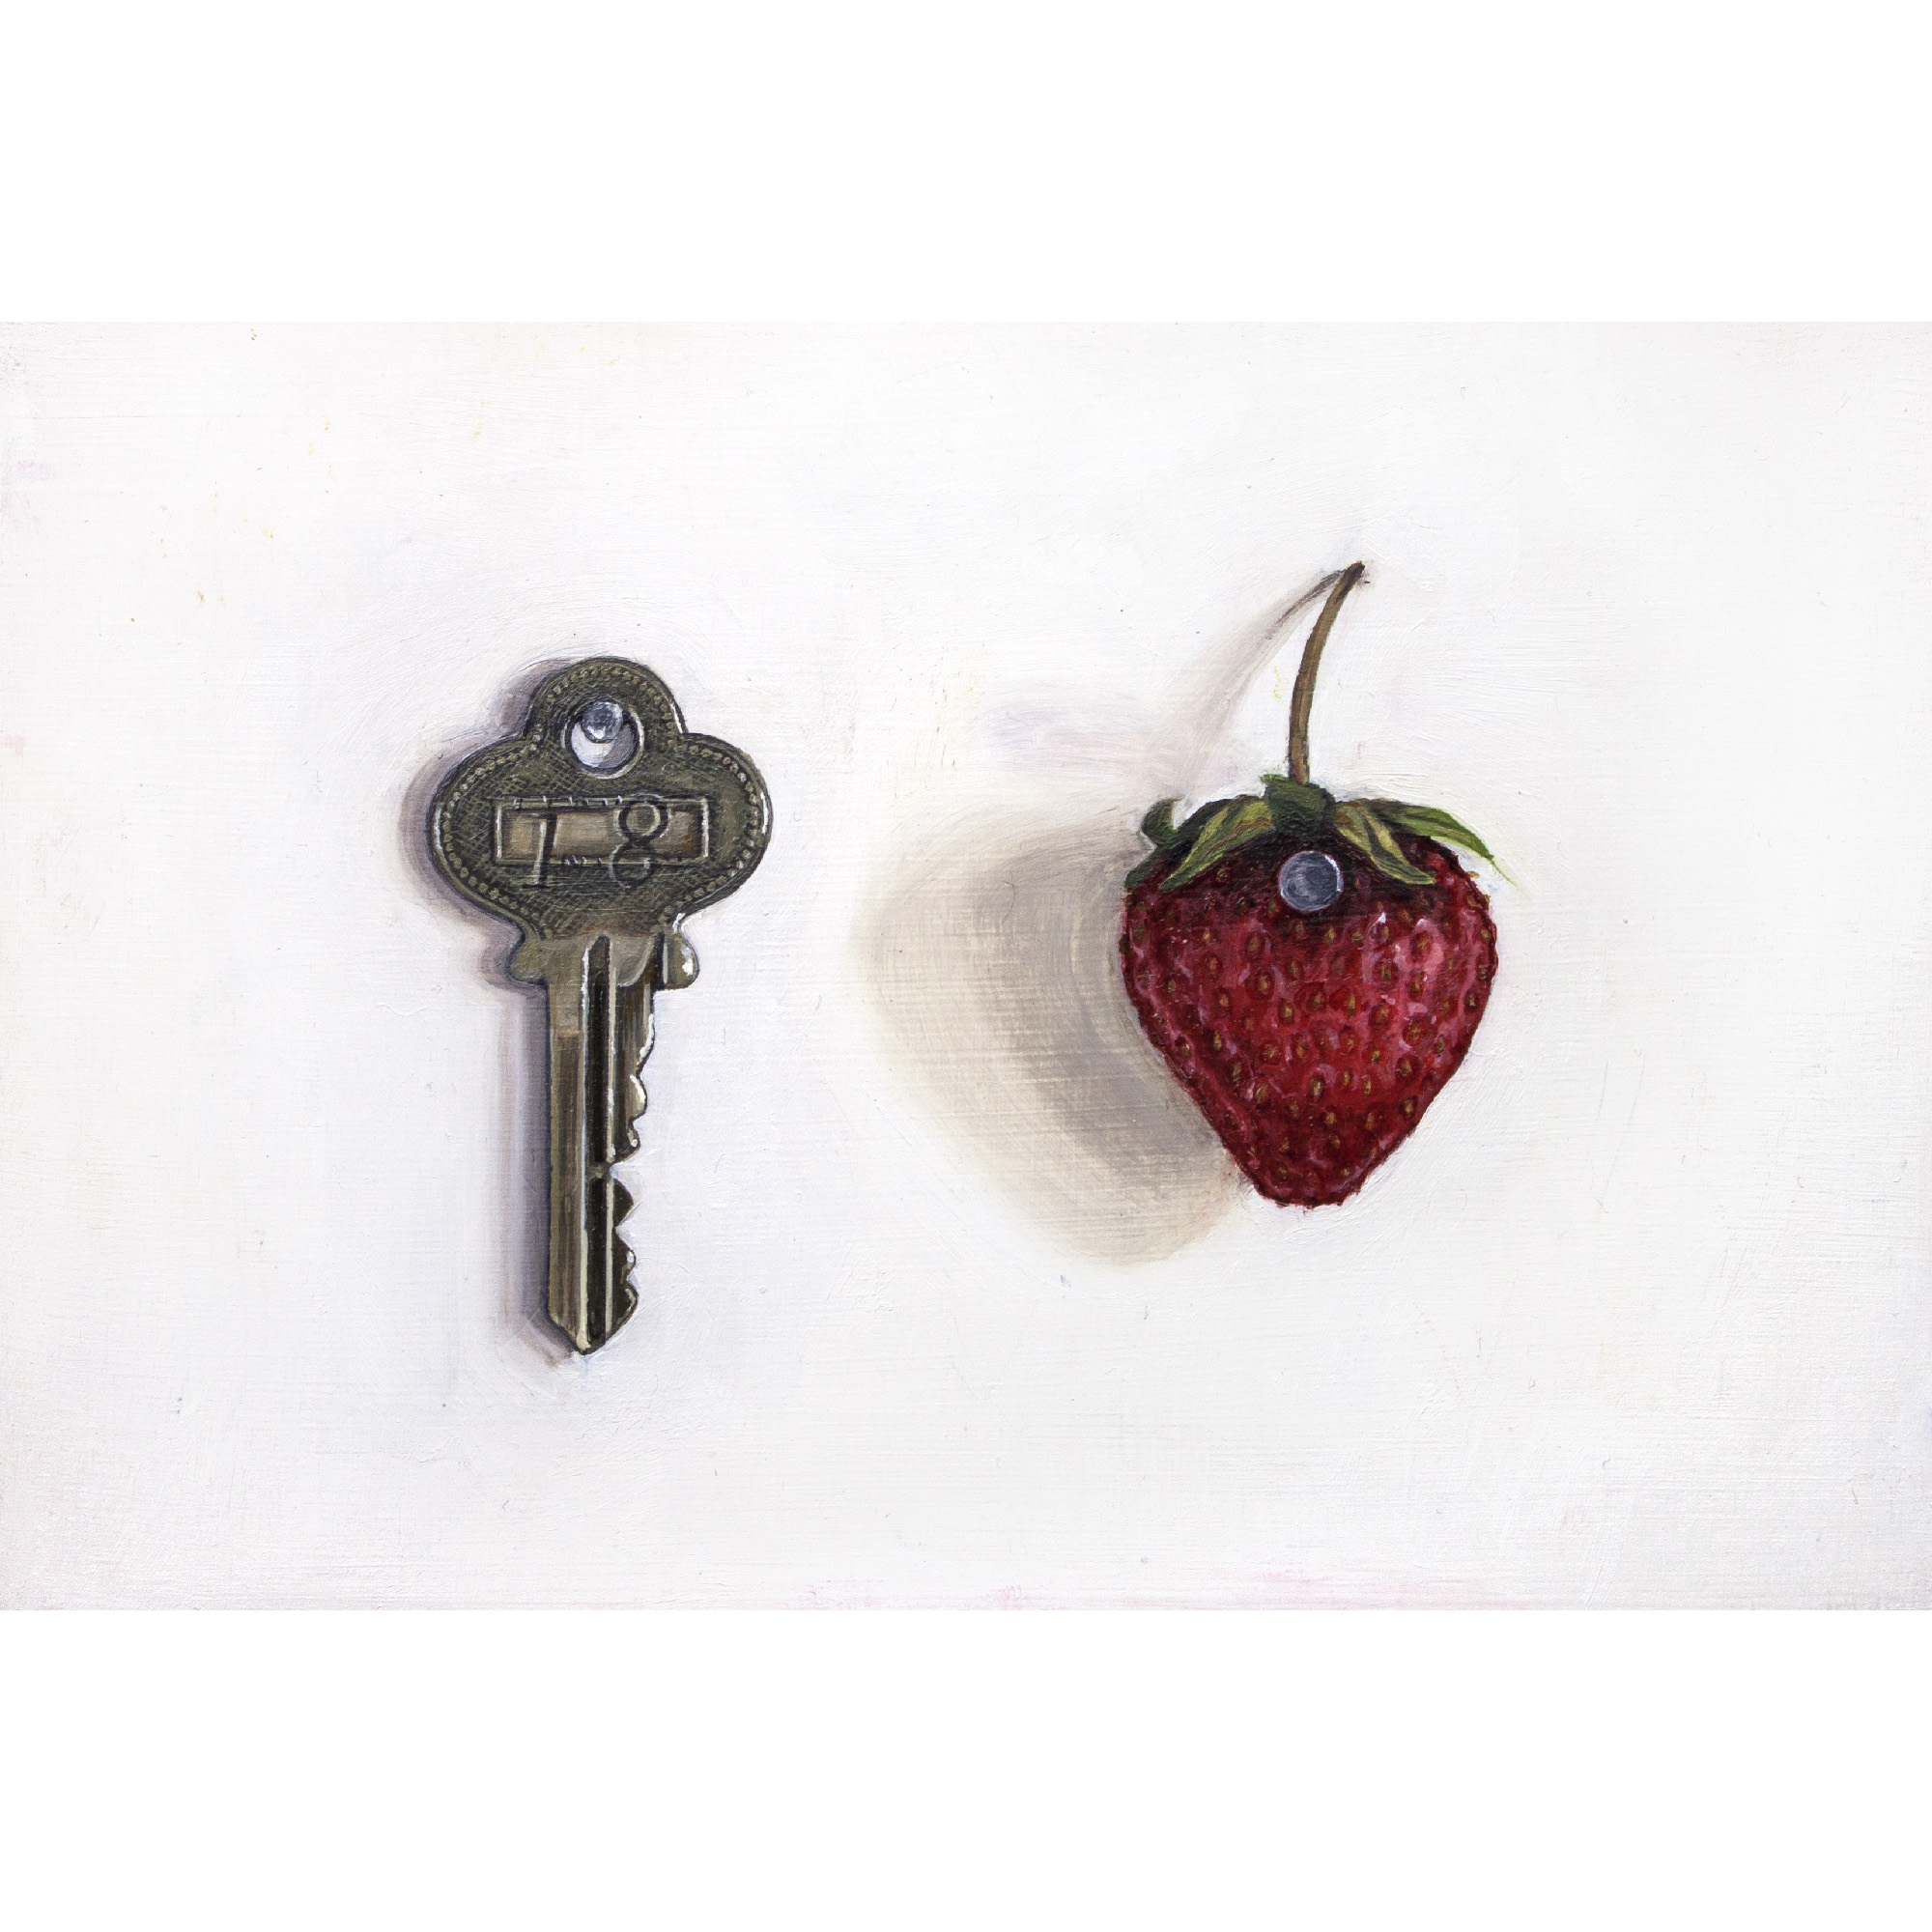 Teeth and Nails: Key and Strawberry